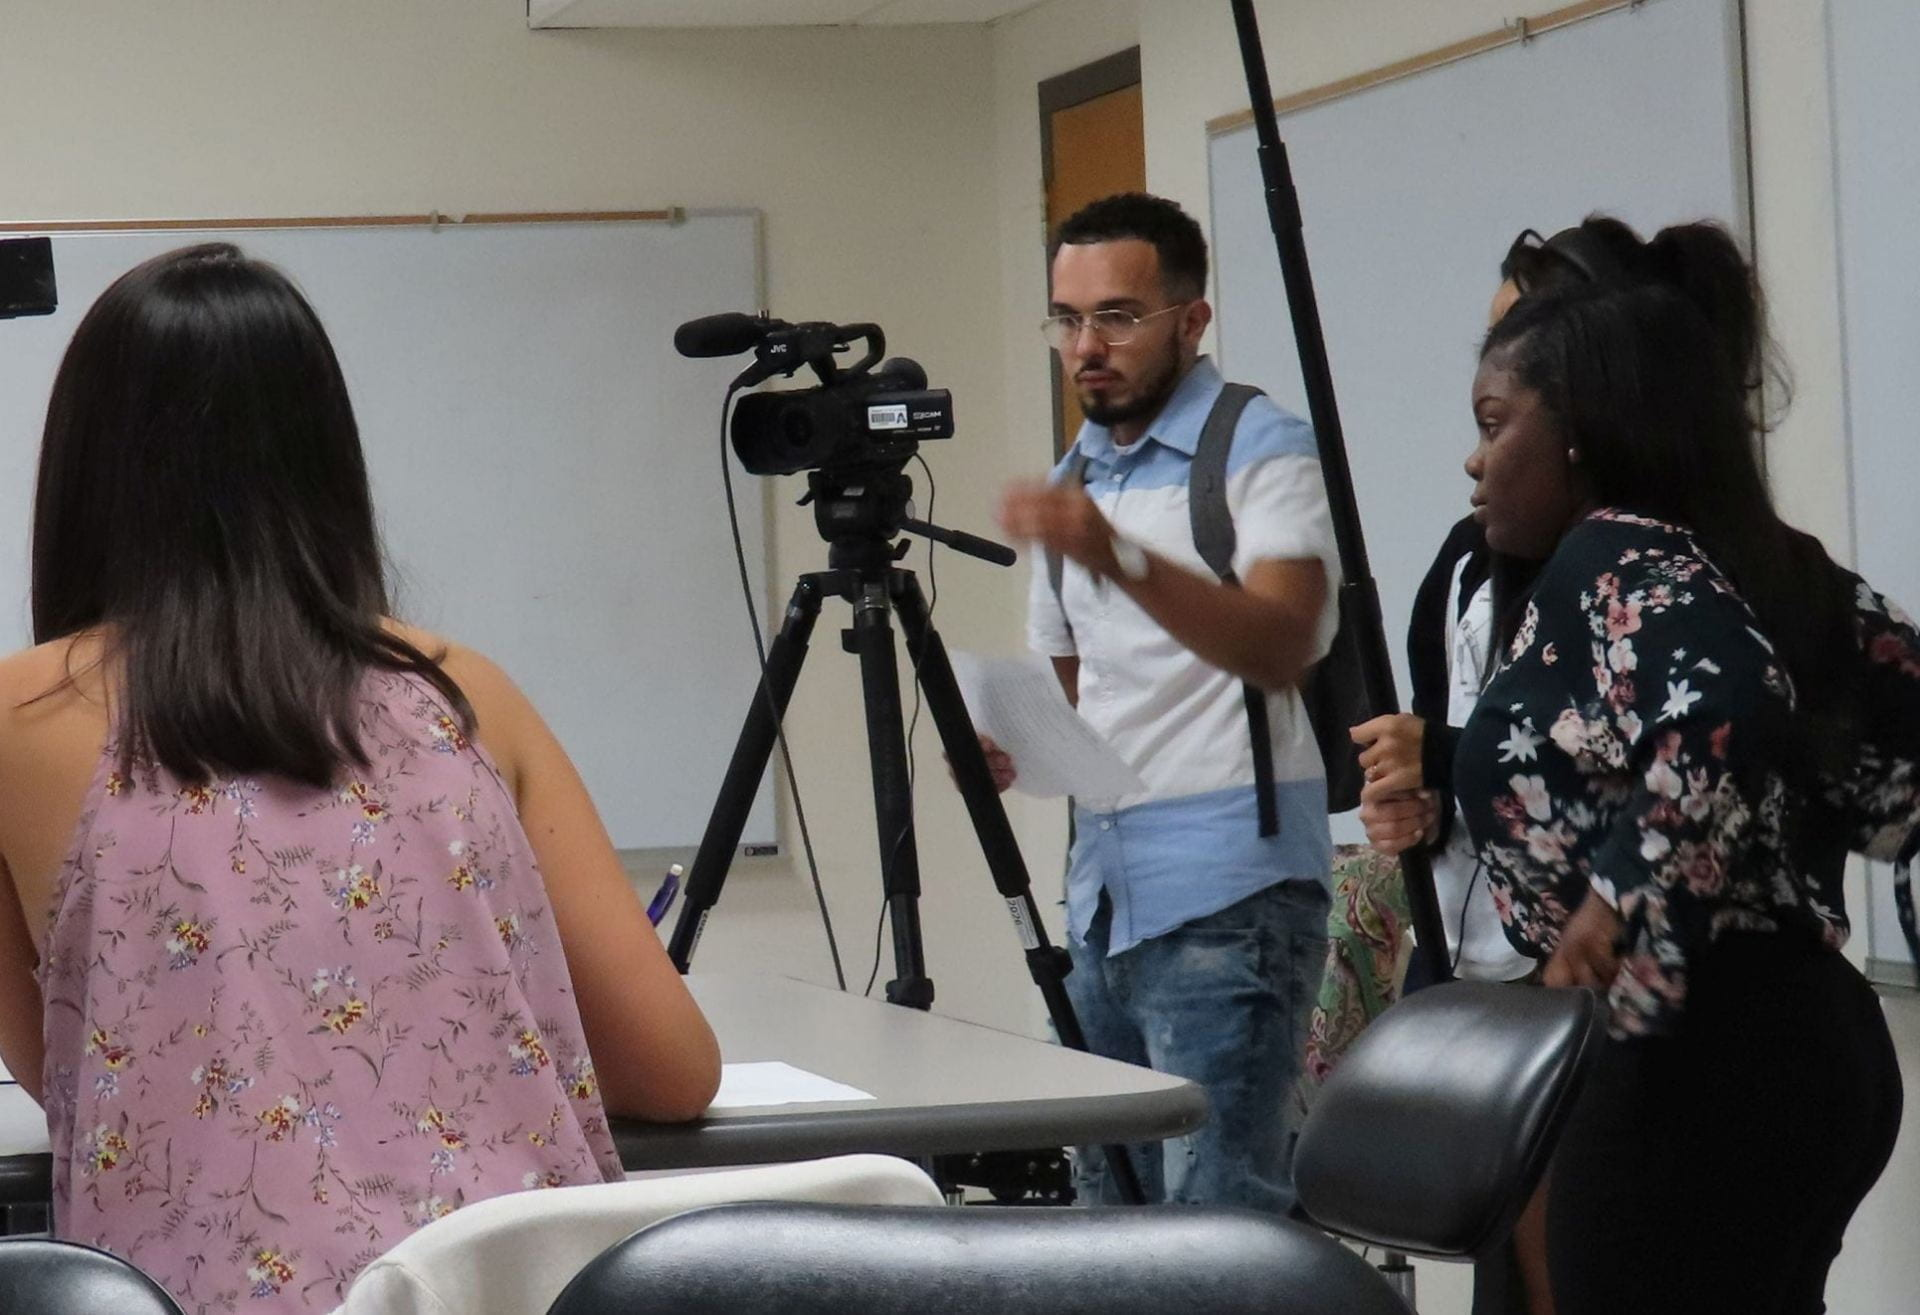 Students working on a filming project